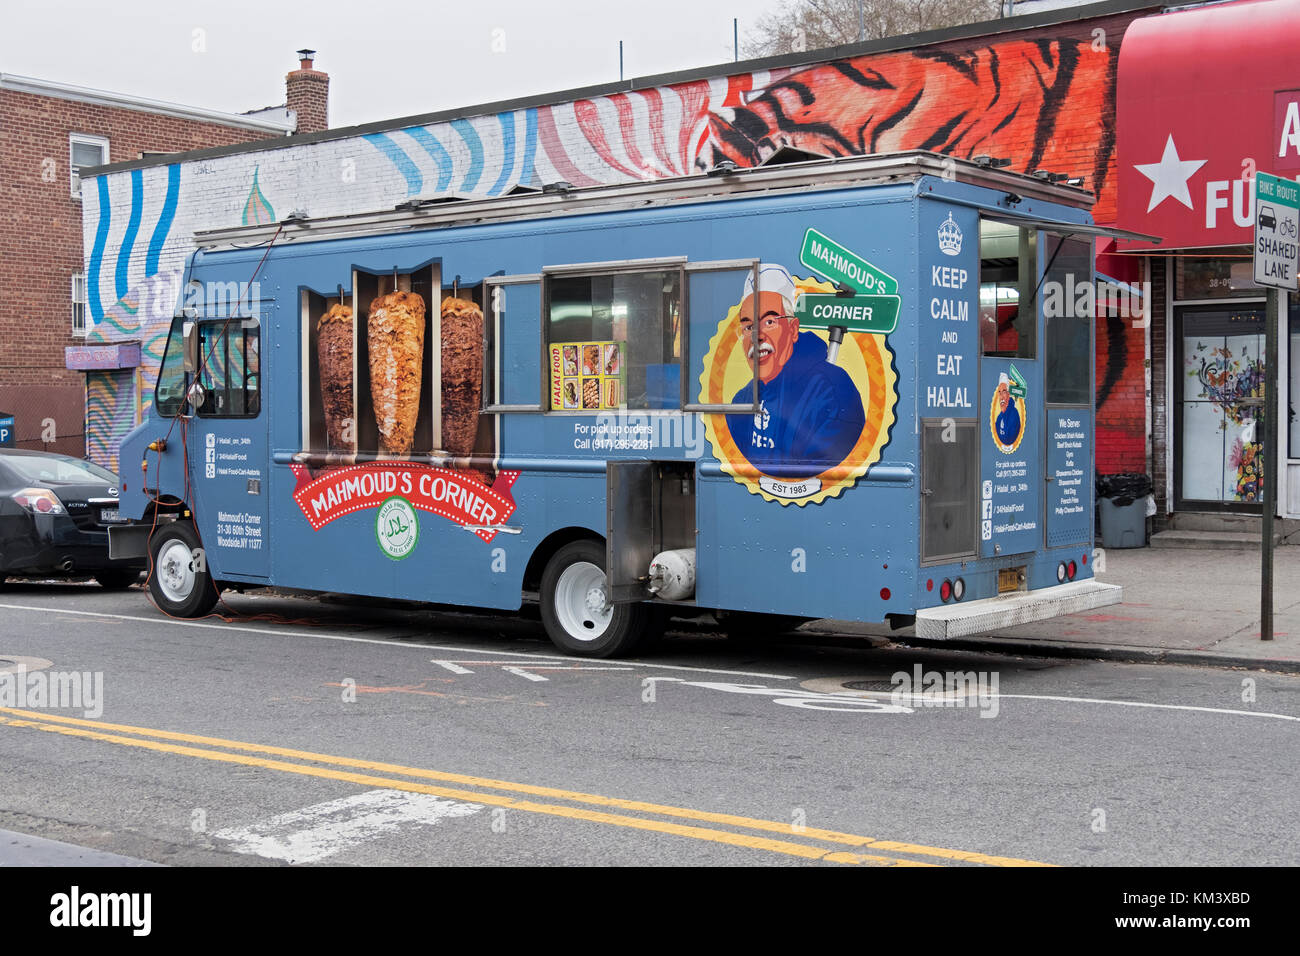 Mahmoud's Corner Halal food truck, a fixture in Astoria, Queens for many years. Parked just off Steinway Street - Stock Image